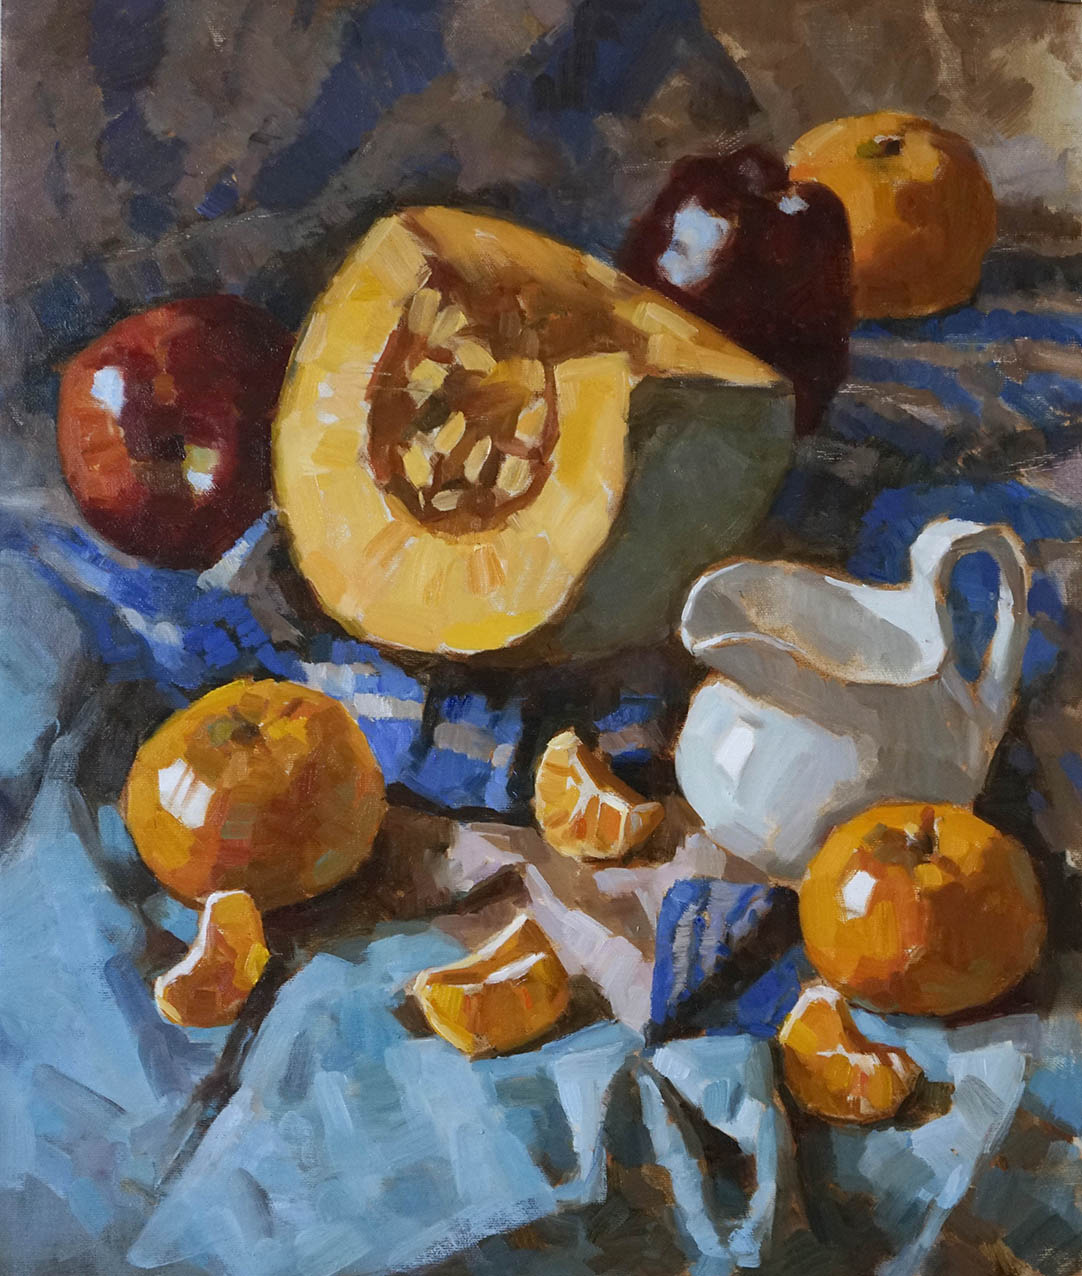 Pumpkin and Fruits.   Oil on Canvas  50 x 60 cm  2017